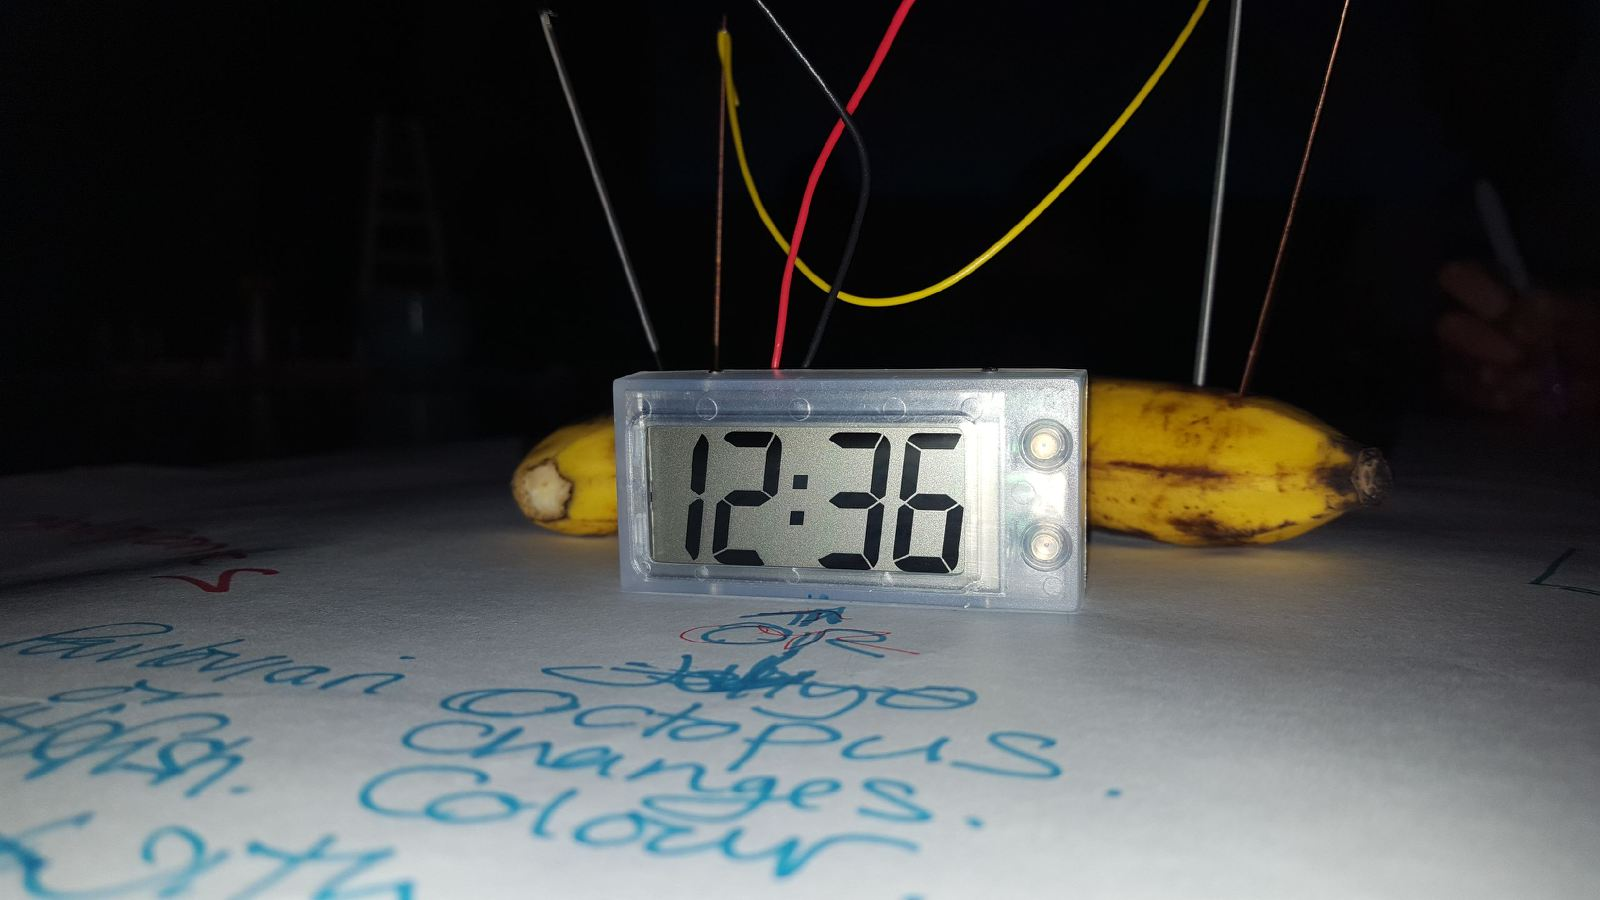 The banana clock at the heart of the Future Machine